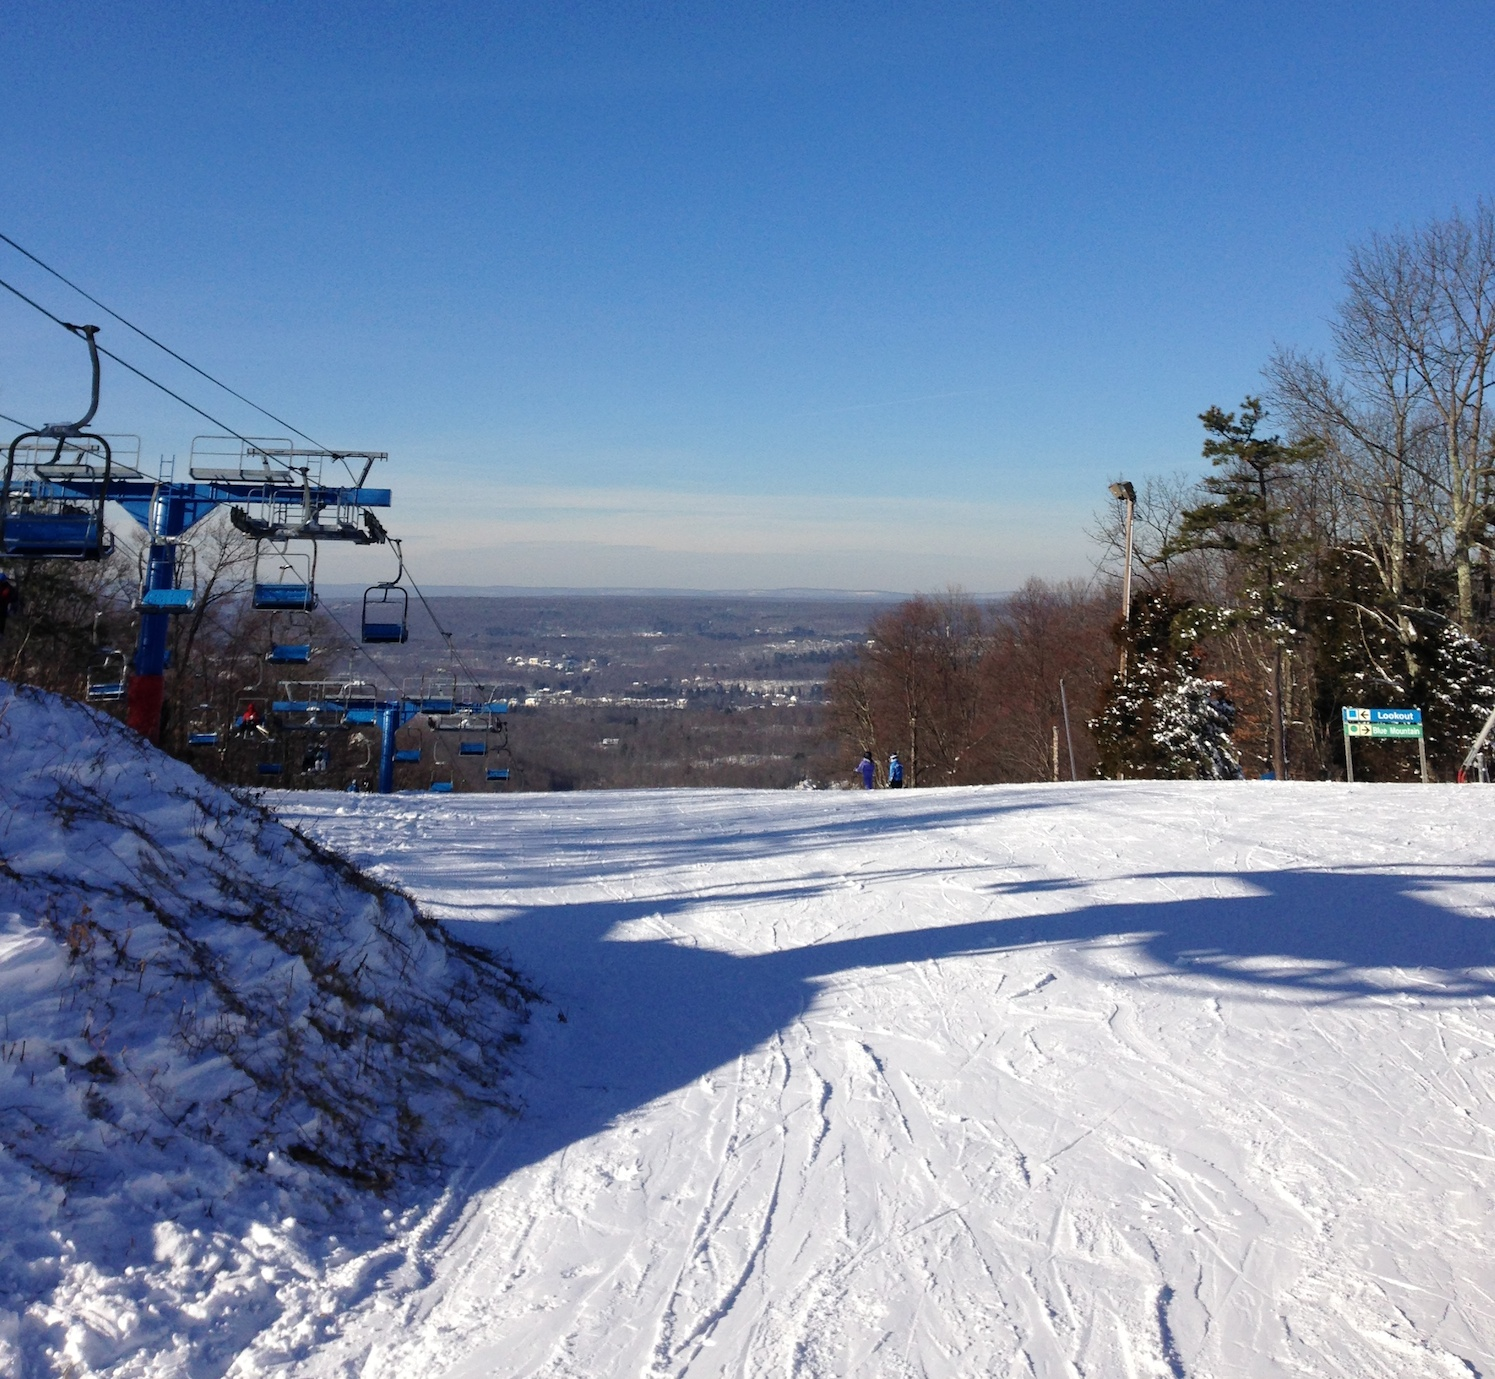 snowboarding at shawnee mountain ski area in the poconos